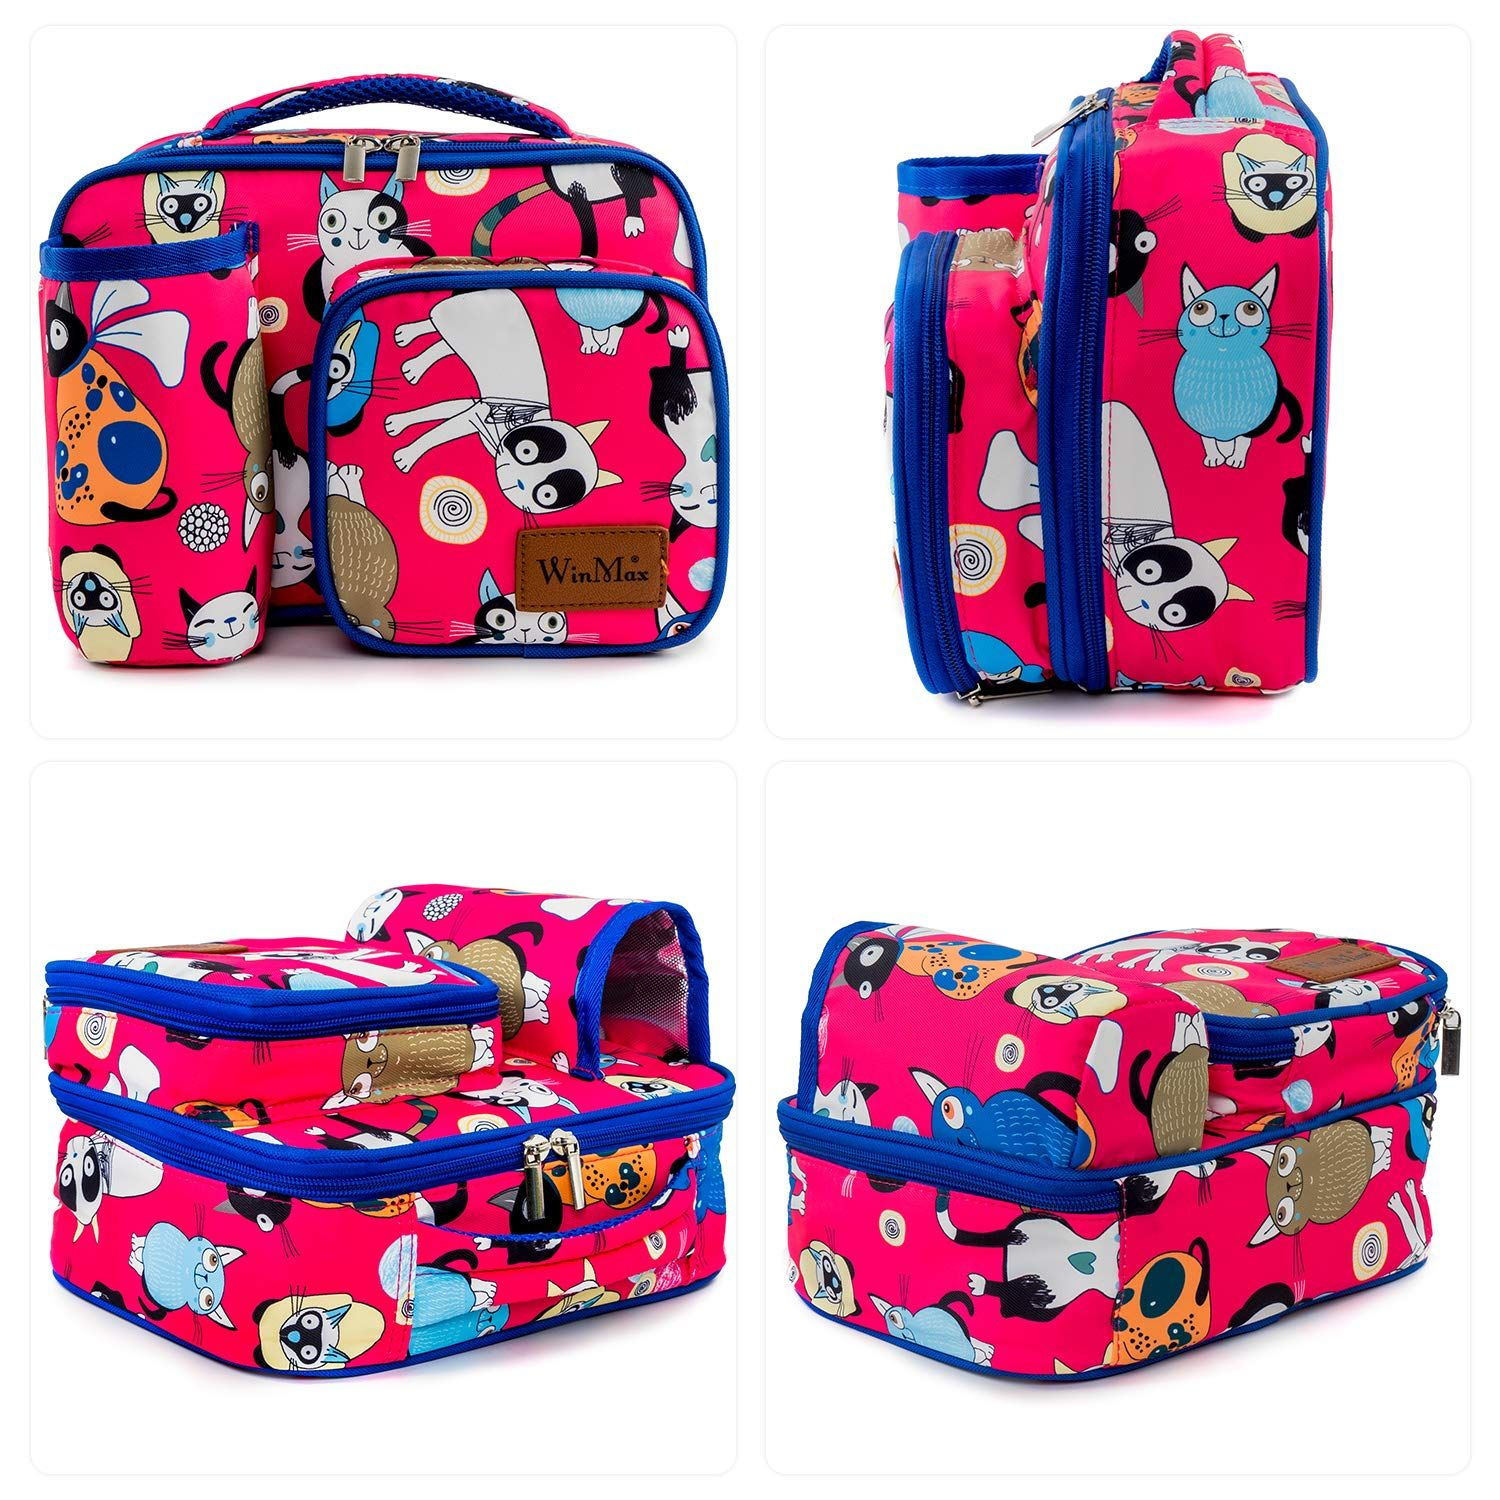 49f7c7236b5f Winmax Kids Lunch Bag, Insulated Lunch Box, Small Cooler Bag with ...